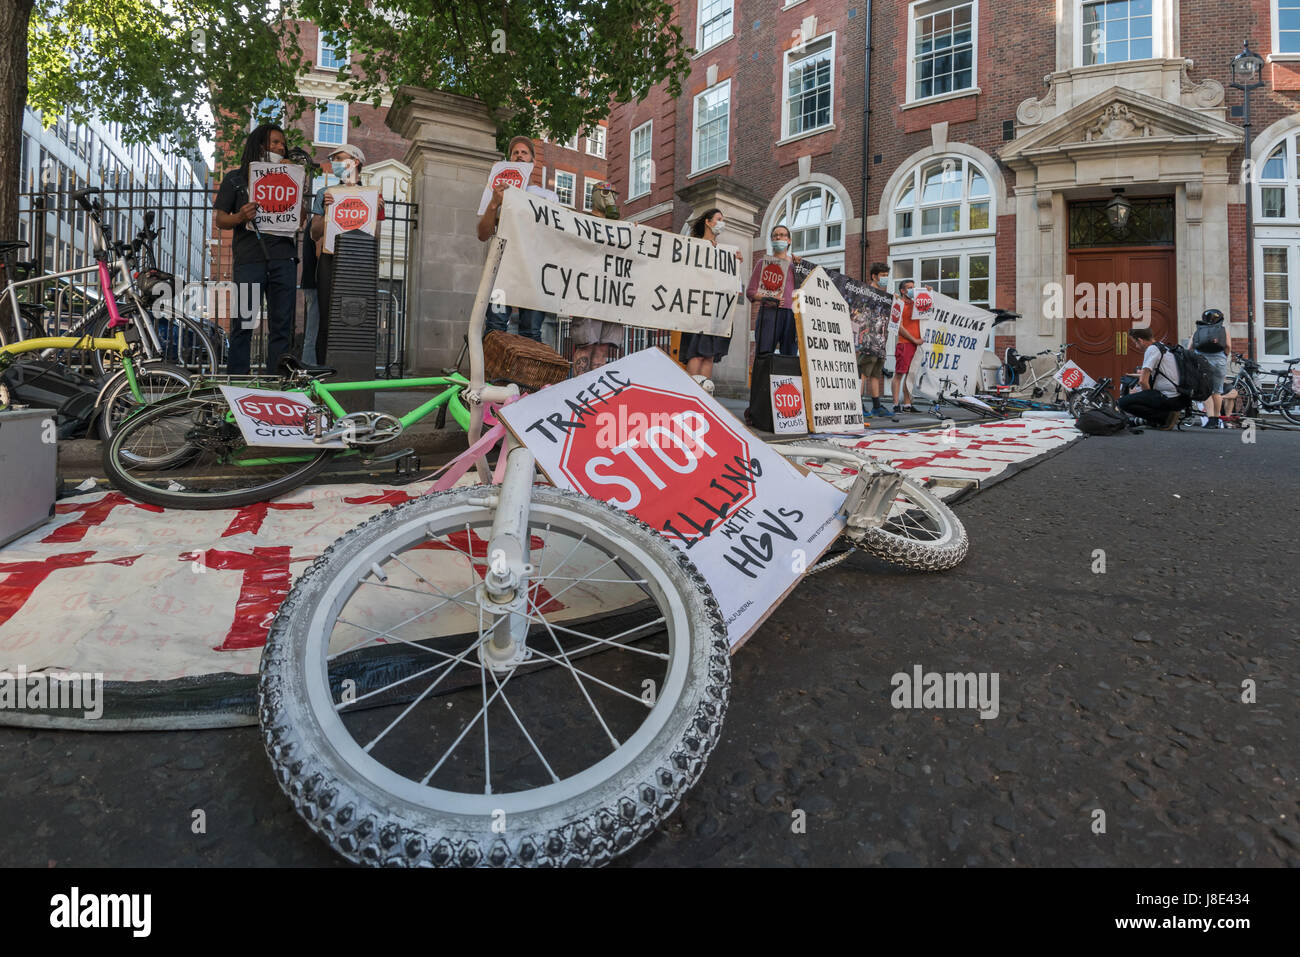 May 26, 2017 - London, UK - London UK. 26th May 2017. Stop Killing Cyclists protest vigil and die in outside the - Stock Image